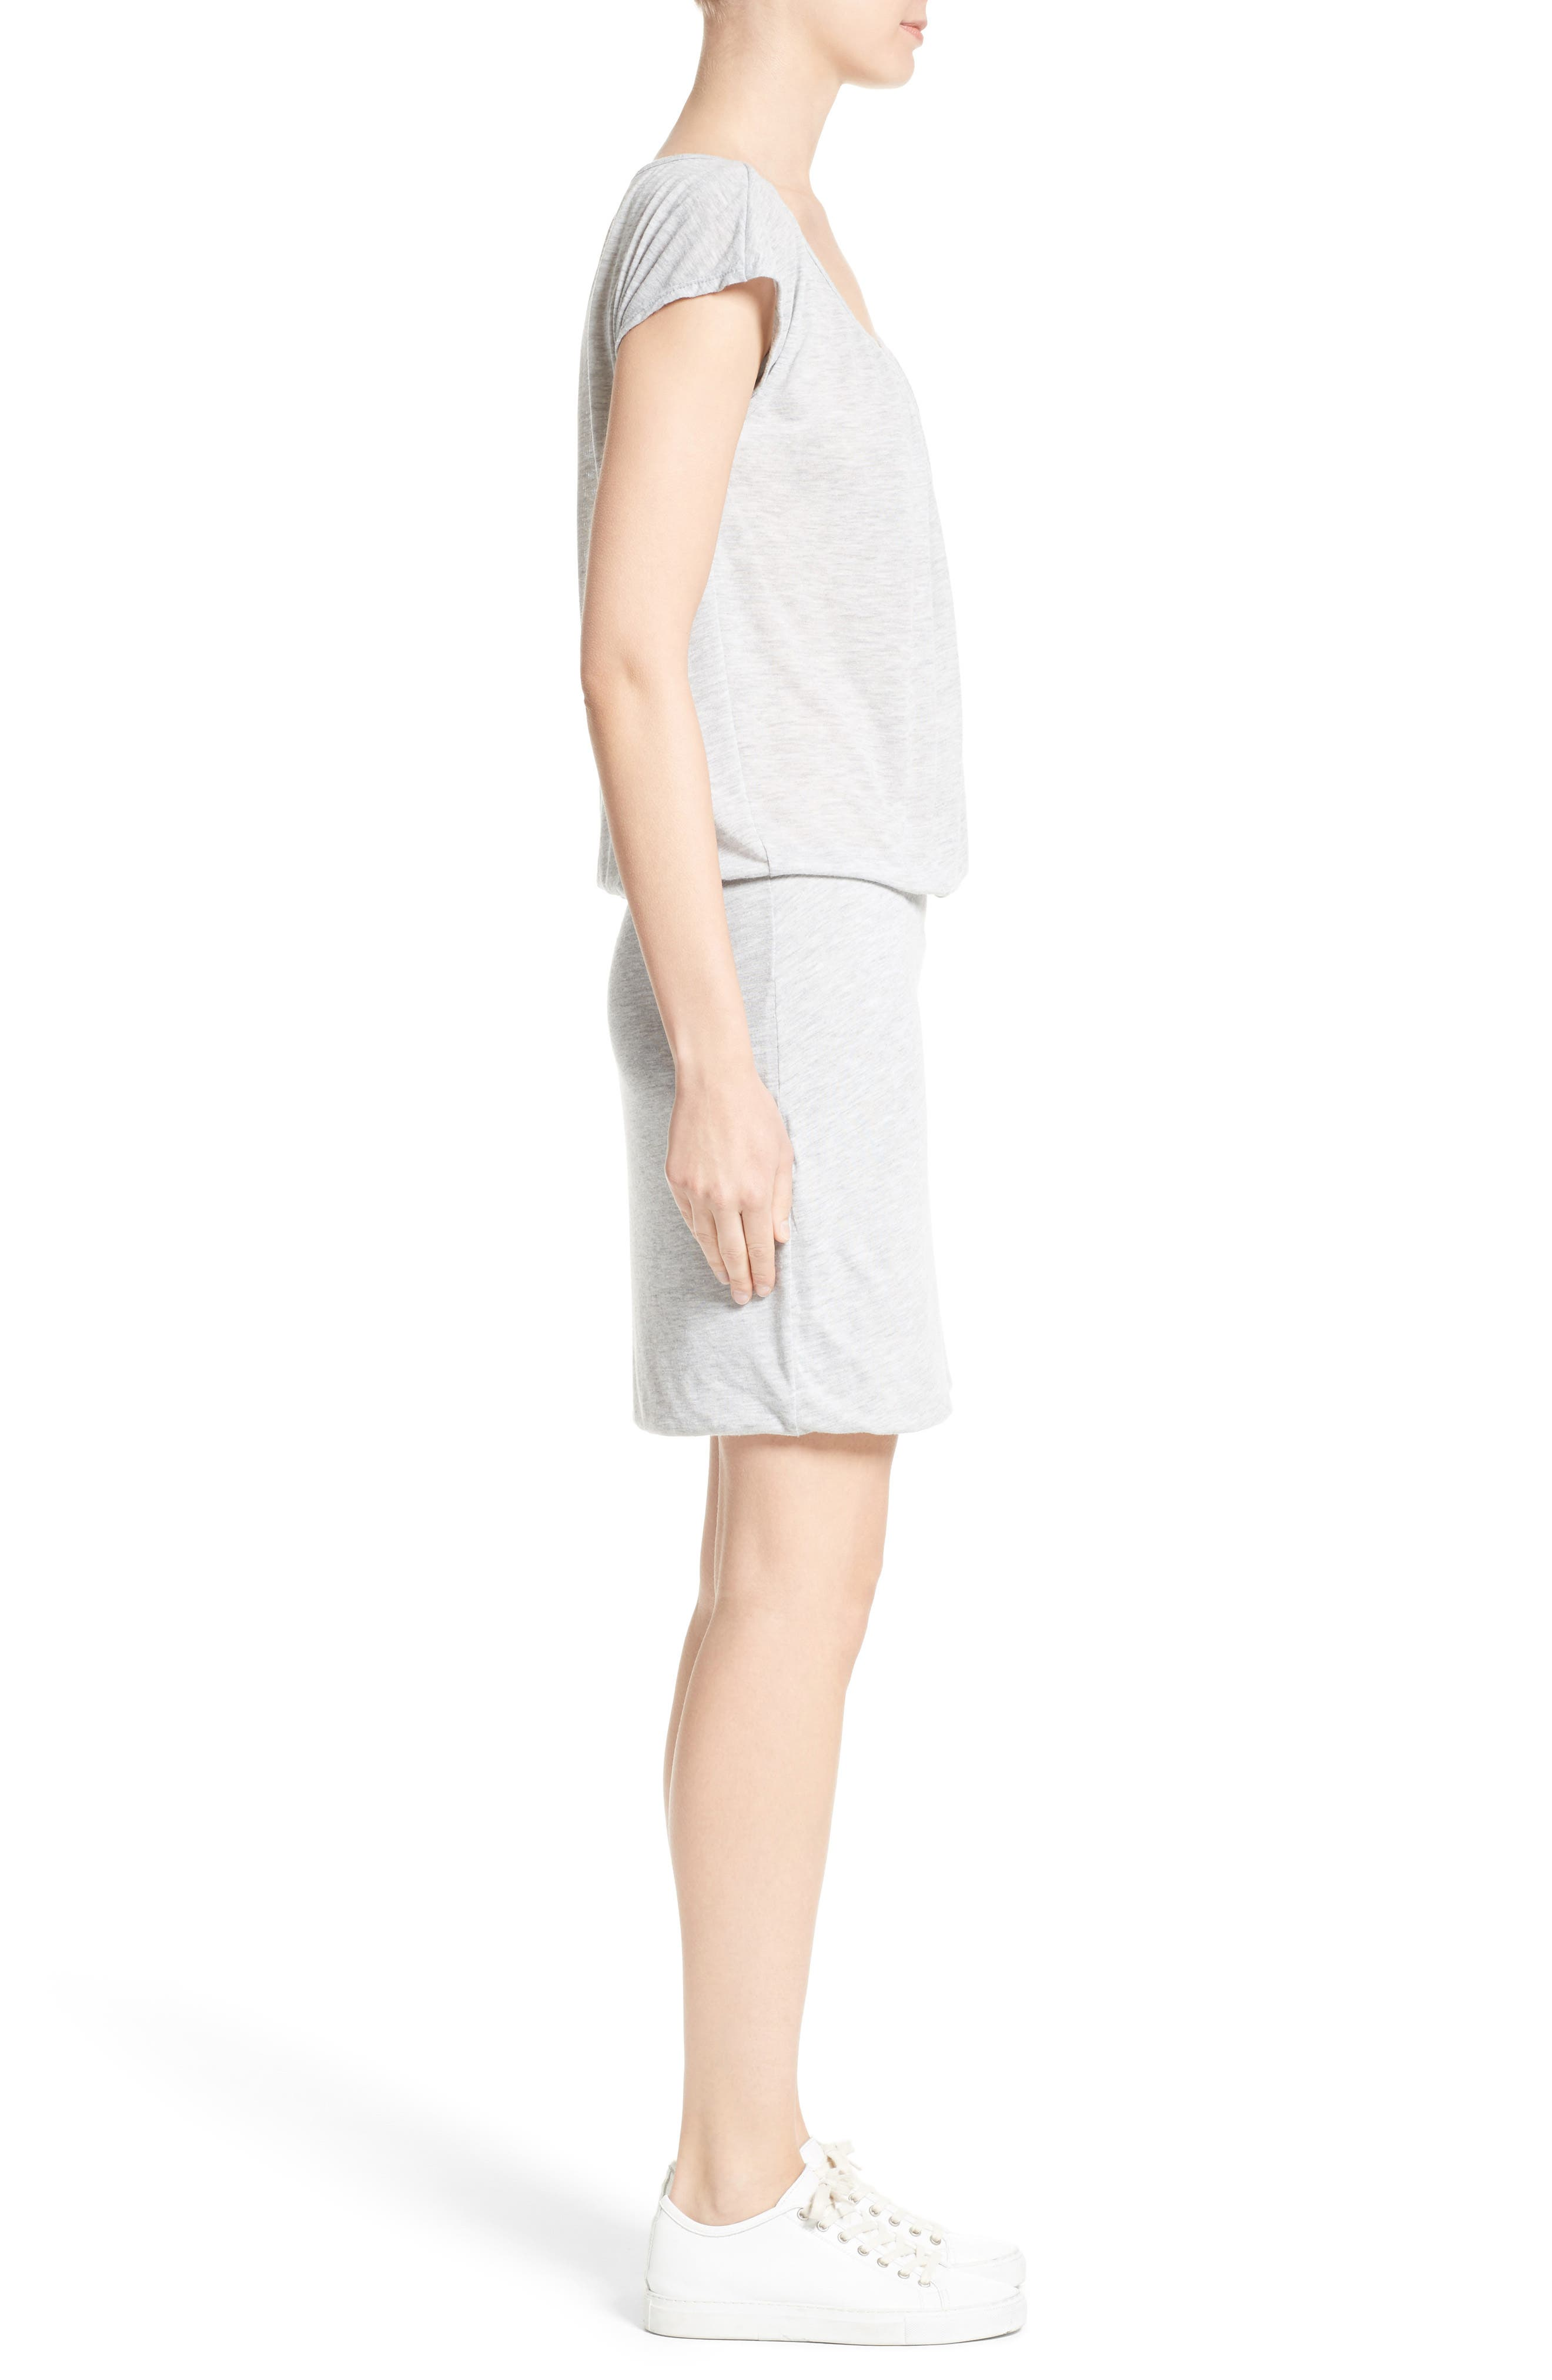 Adrijana Jersey Dress,                             Alternate thumbnail 3, color,                             099